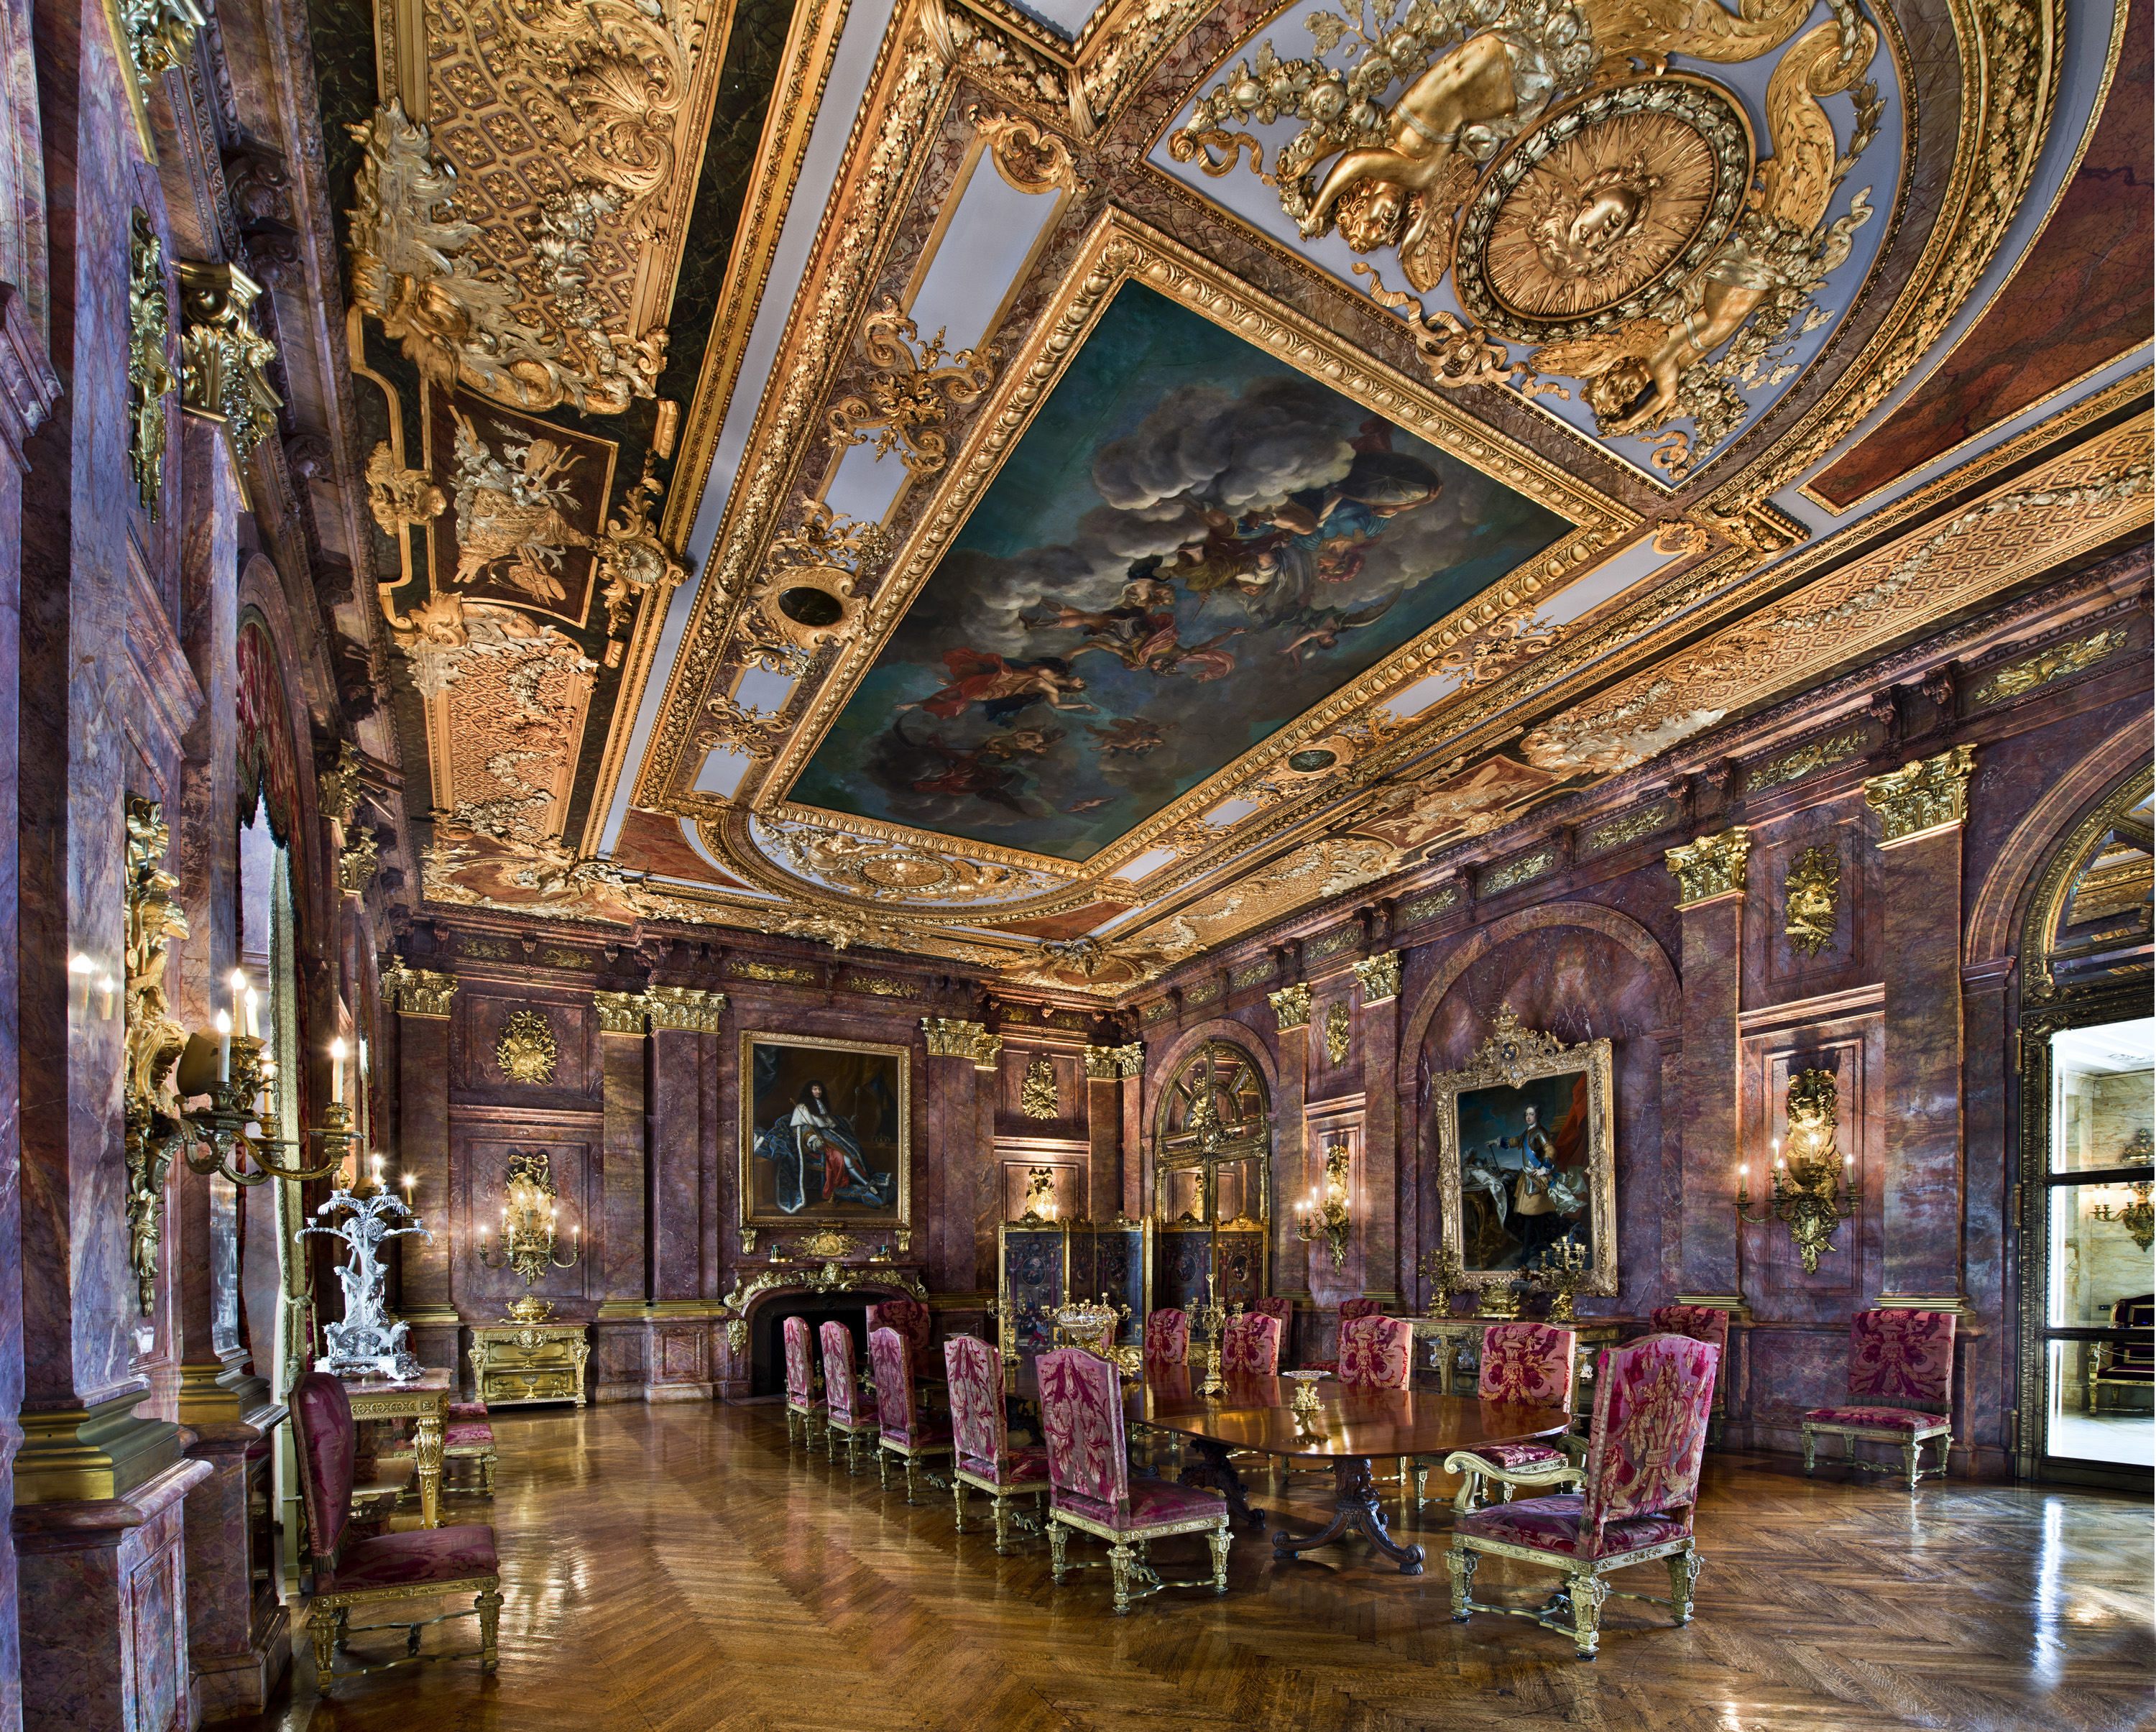 Trump Gold House Newport Mansions Experiencing The Gilded Age New